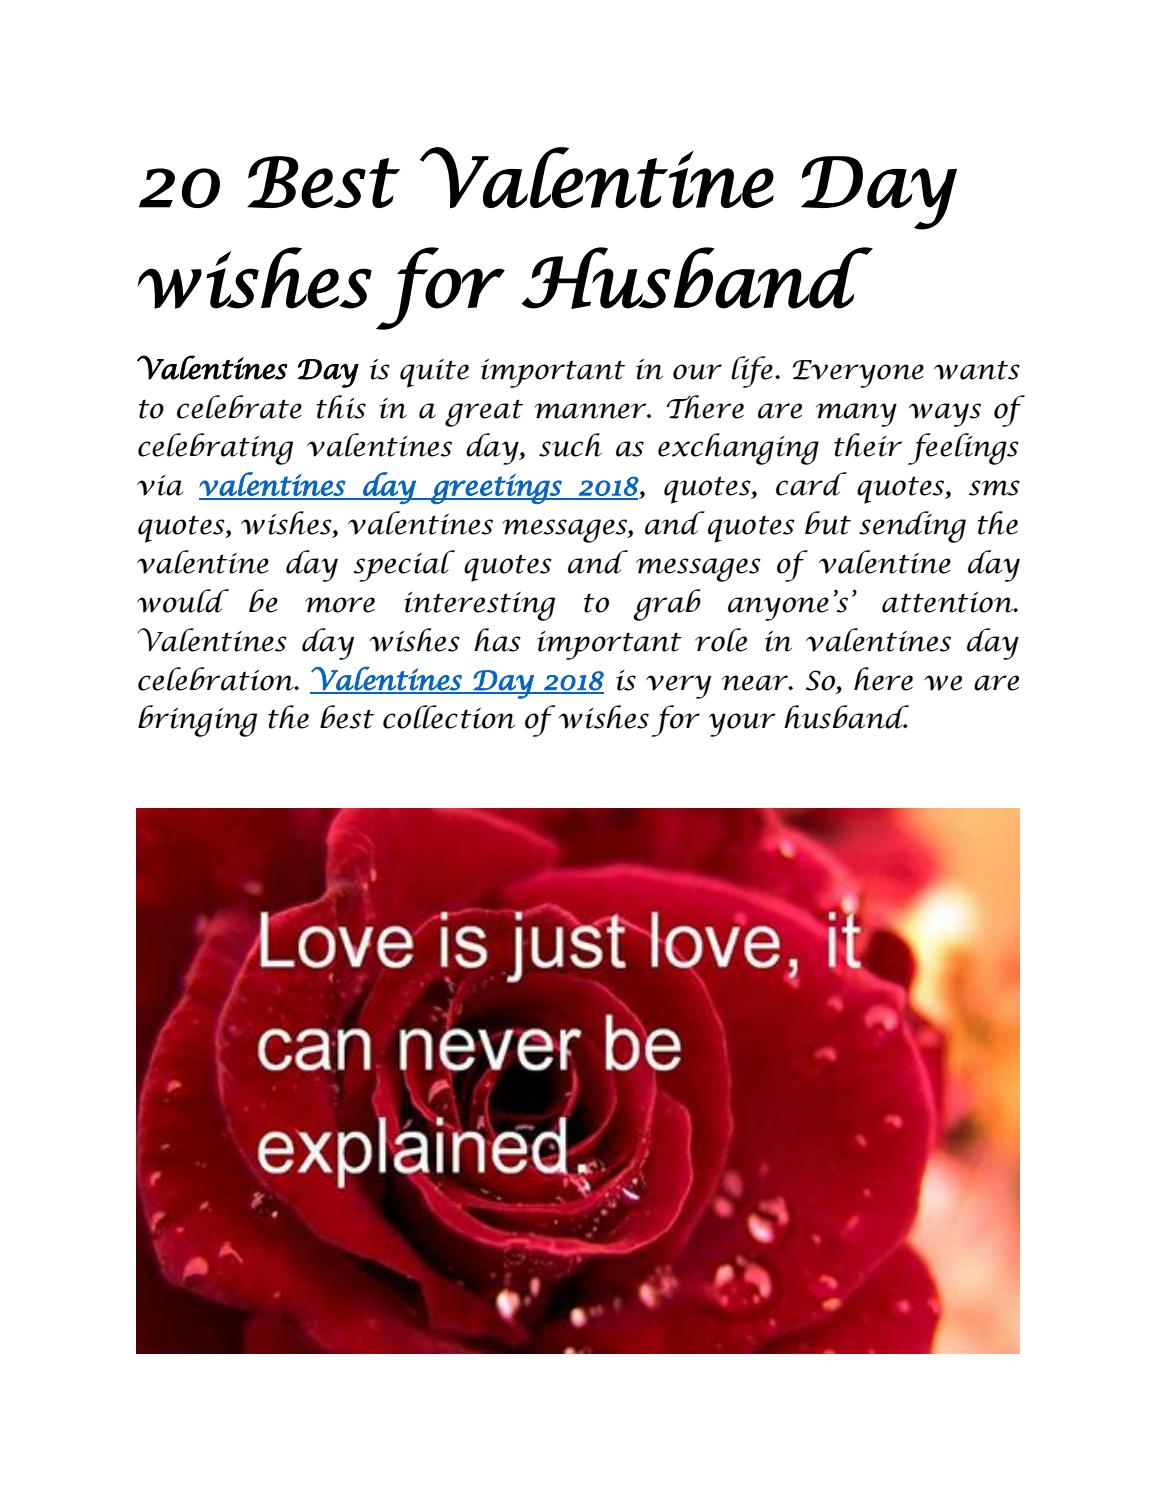 20 best valentine day wishes for husband by Wishes Quotes - Issuu